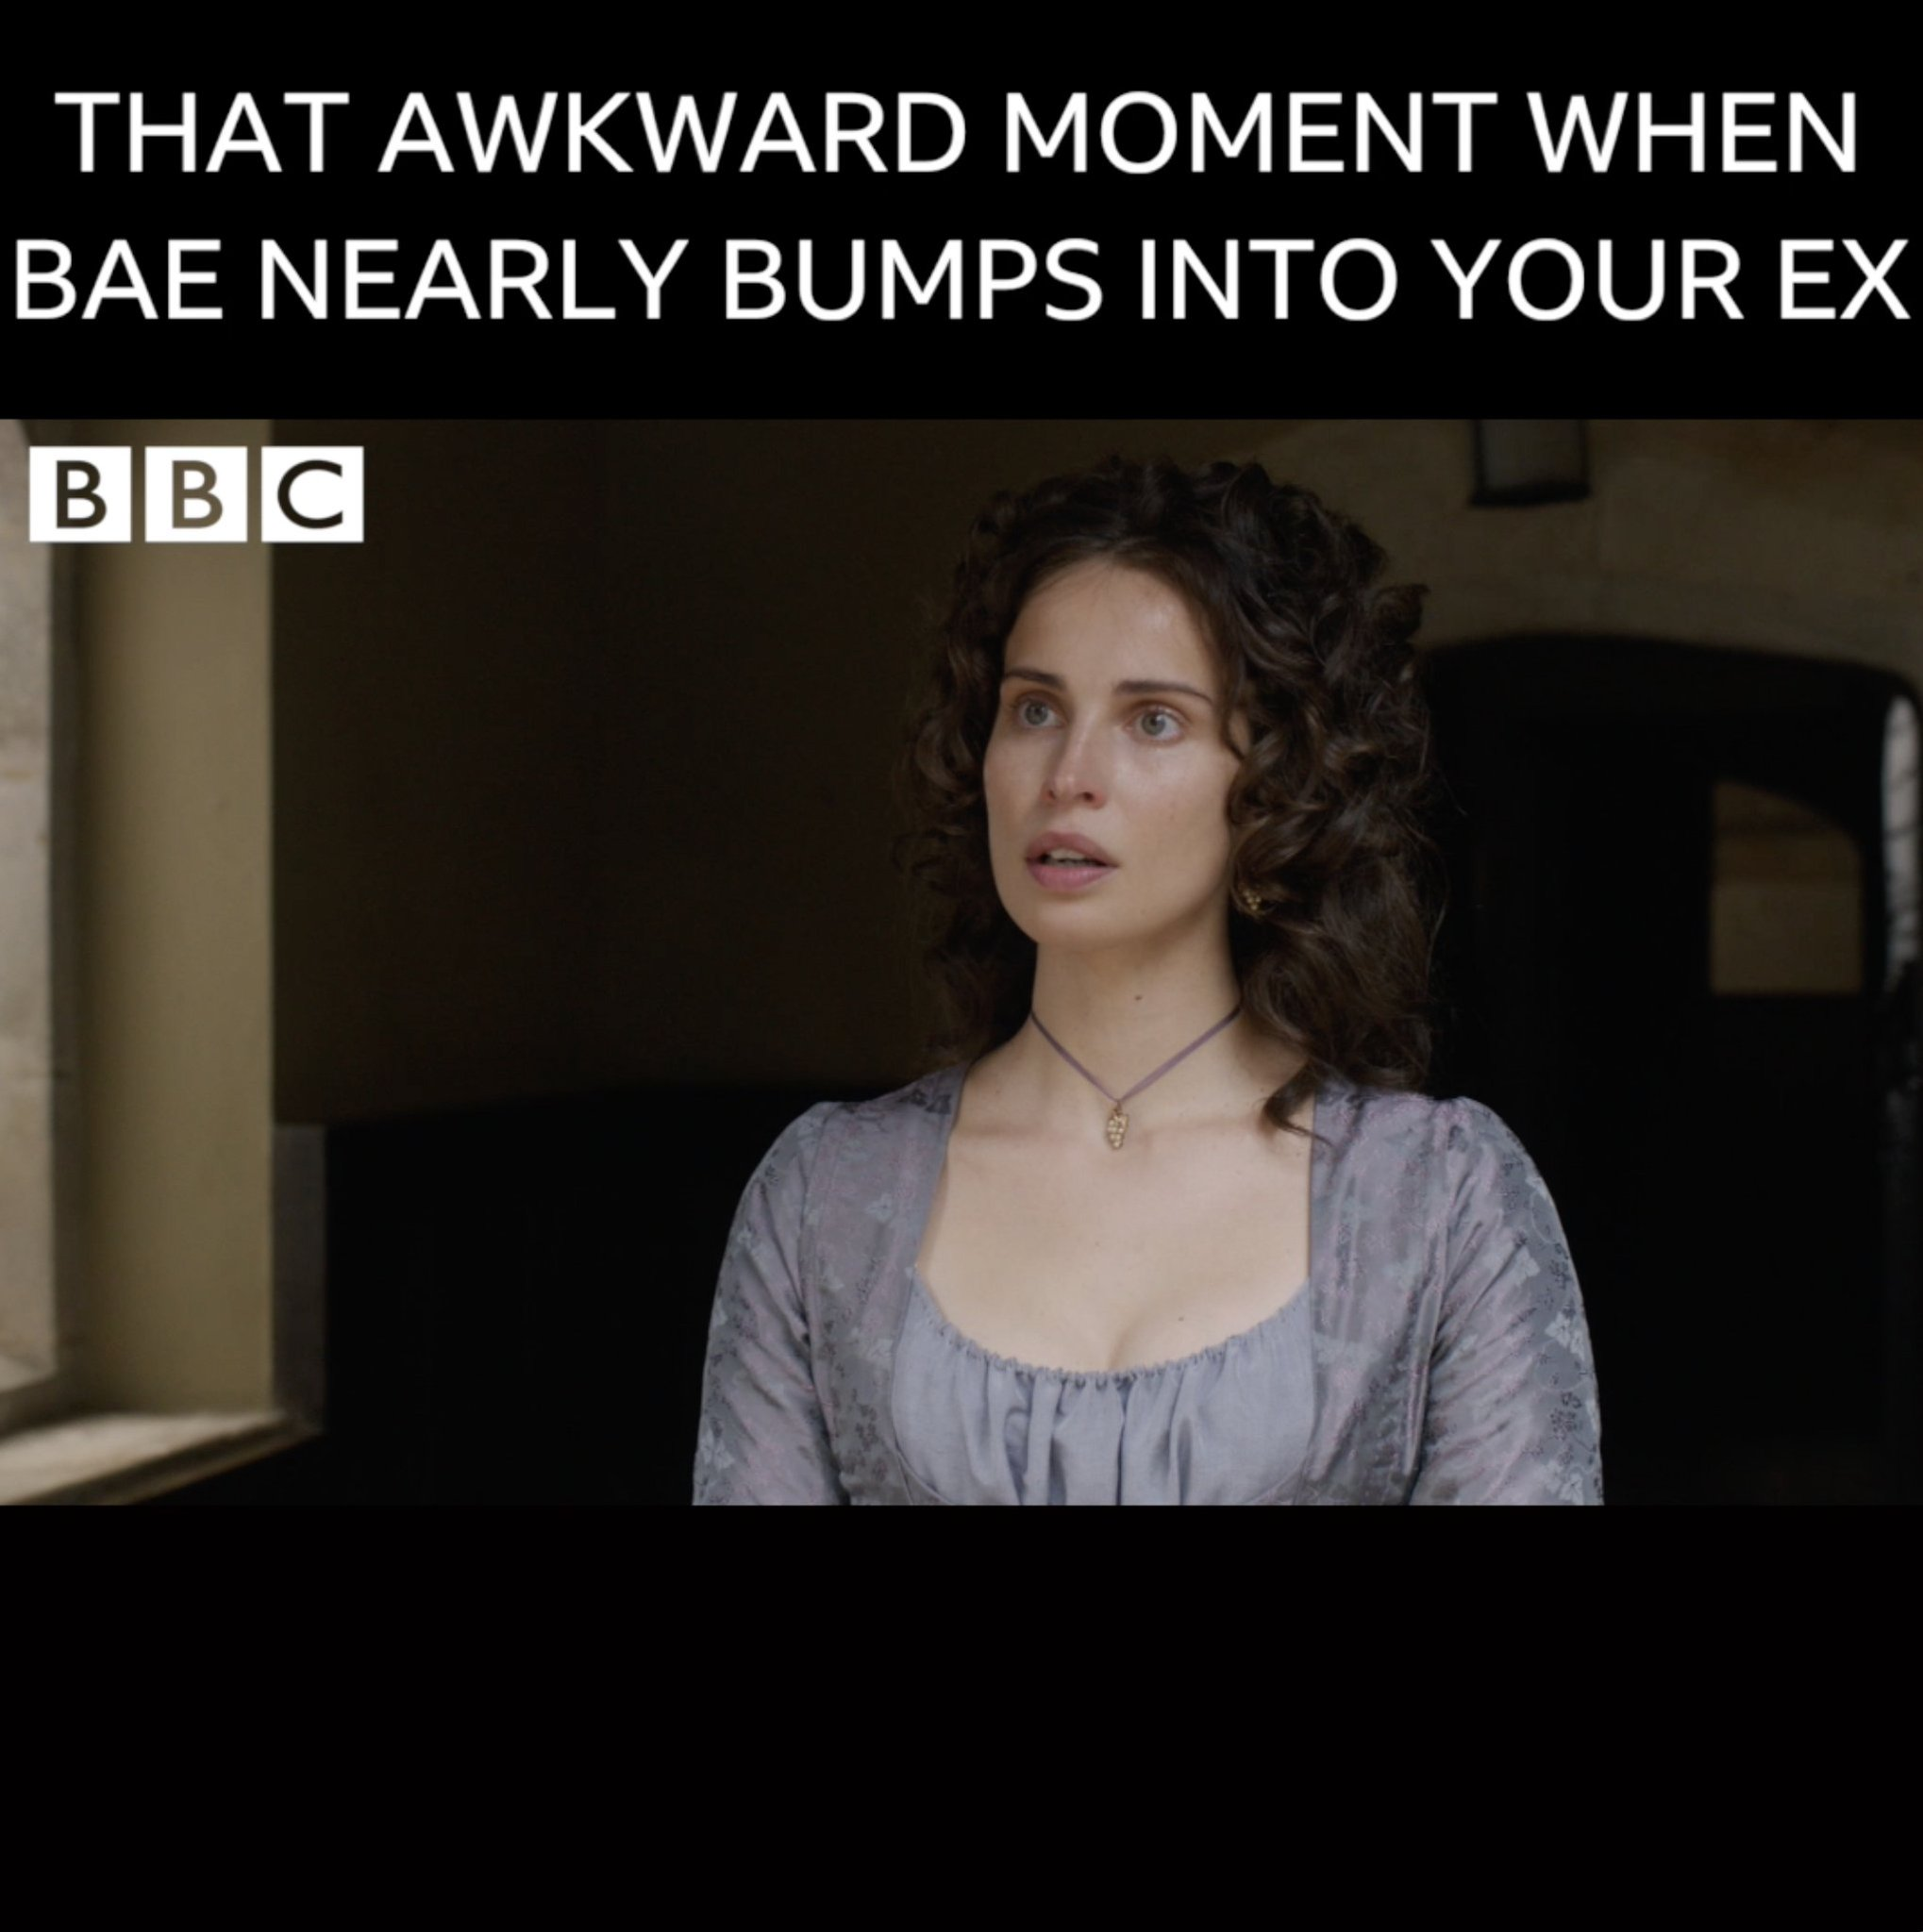 A very close shave... ��  #Poldark. Tonight at 9pm on @BBCOne. https://t.co/7PSxFMwIt2